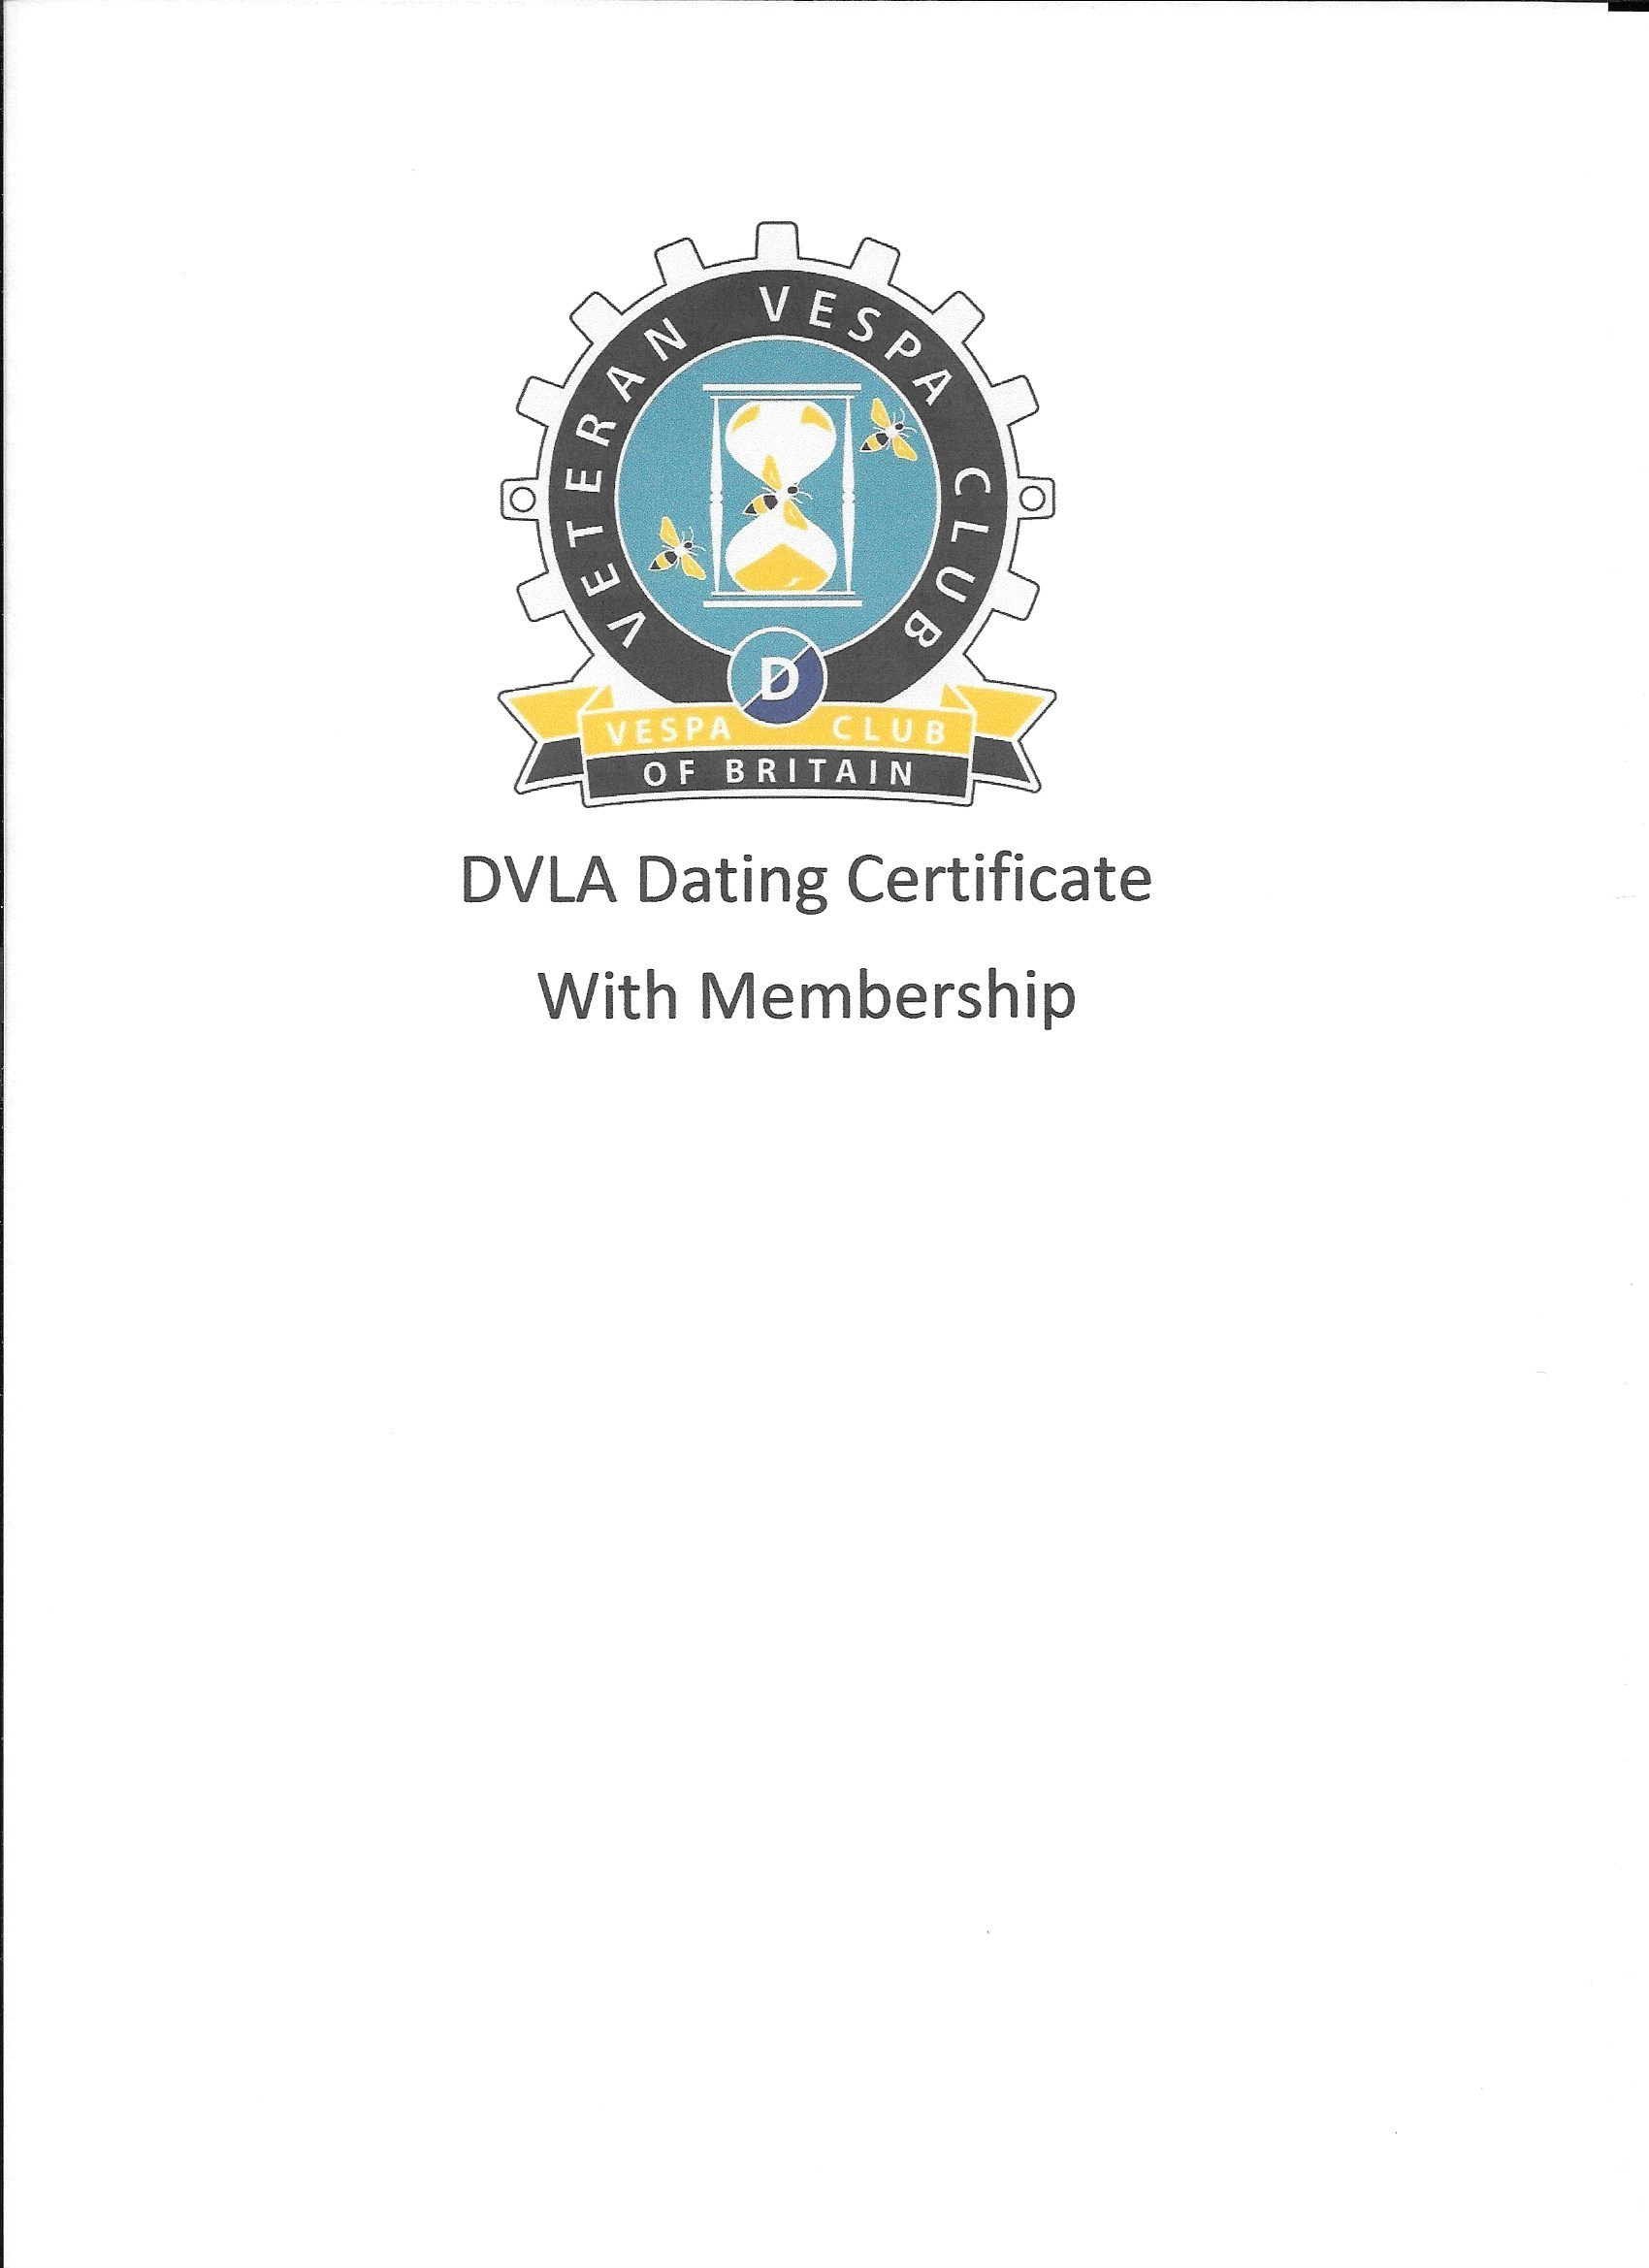 VVC Dating Certificate (When joining VVC at the same time) 00021